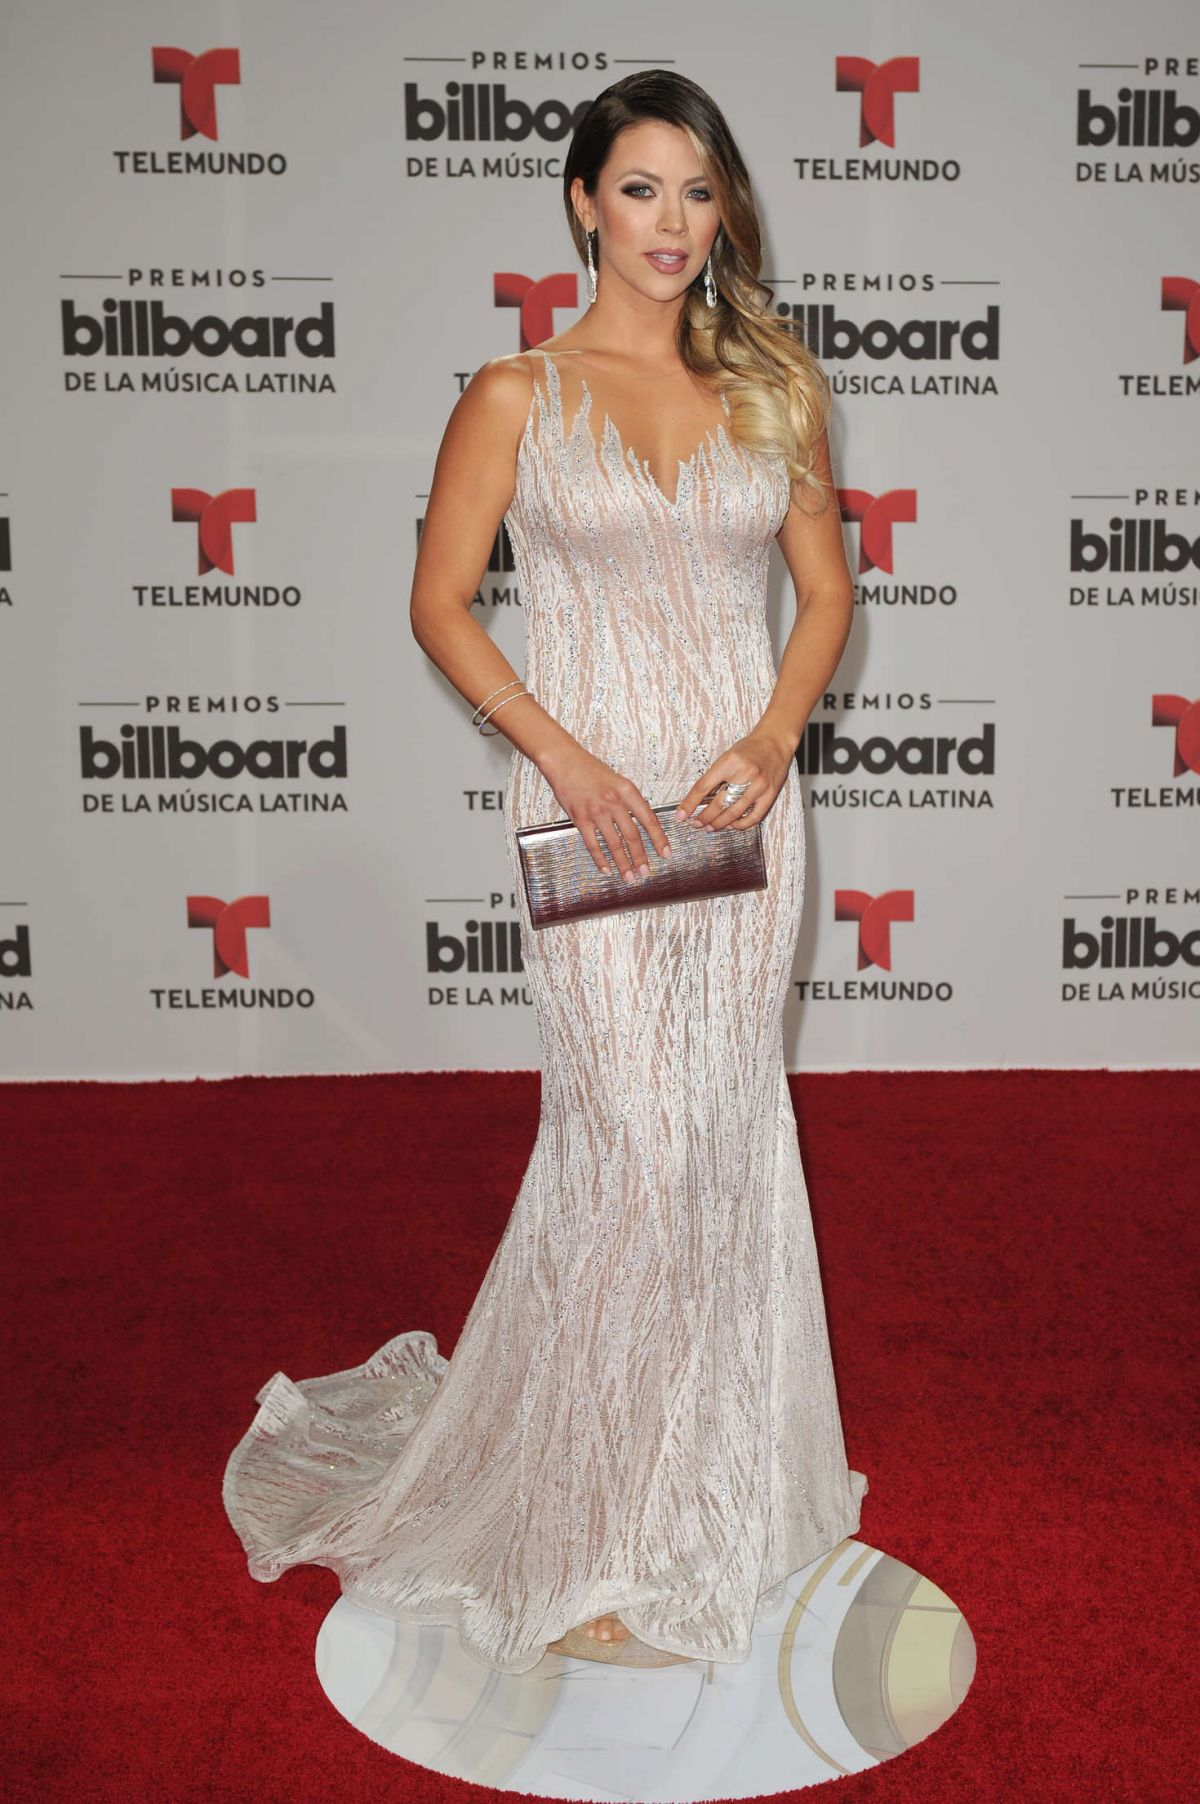 XIMENA DUQUE at Billboard Latin Music Awards in Miami 04/28/2016